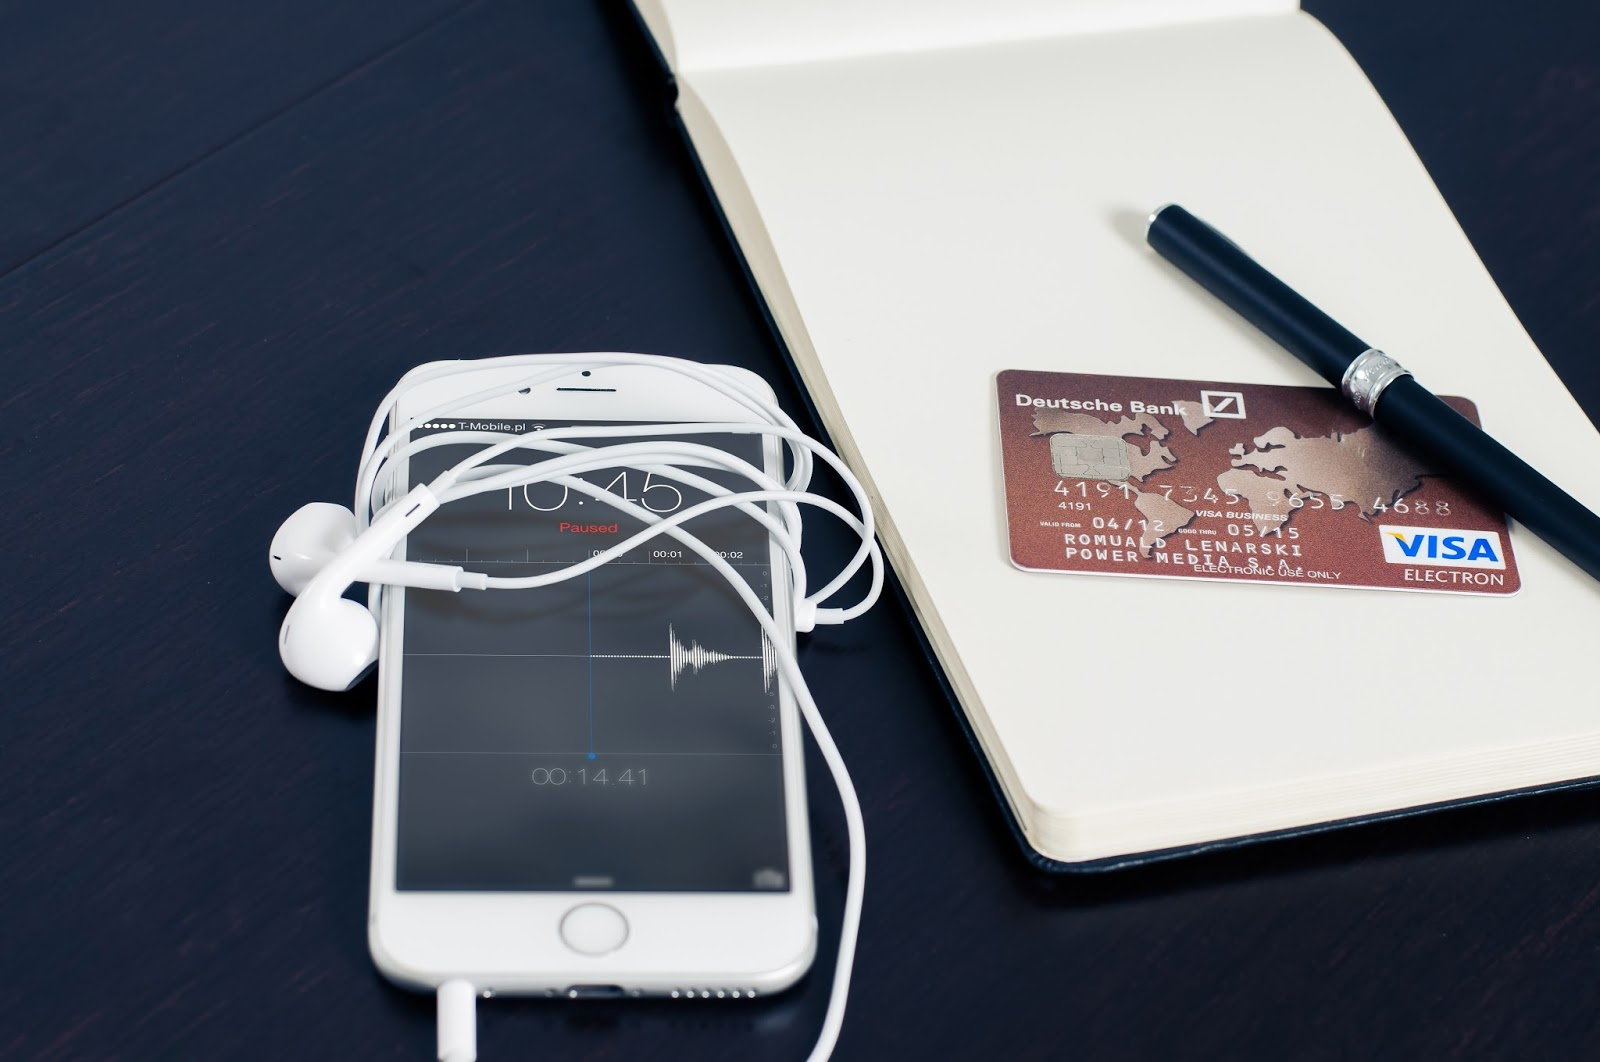 mobile phone and credit card on table